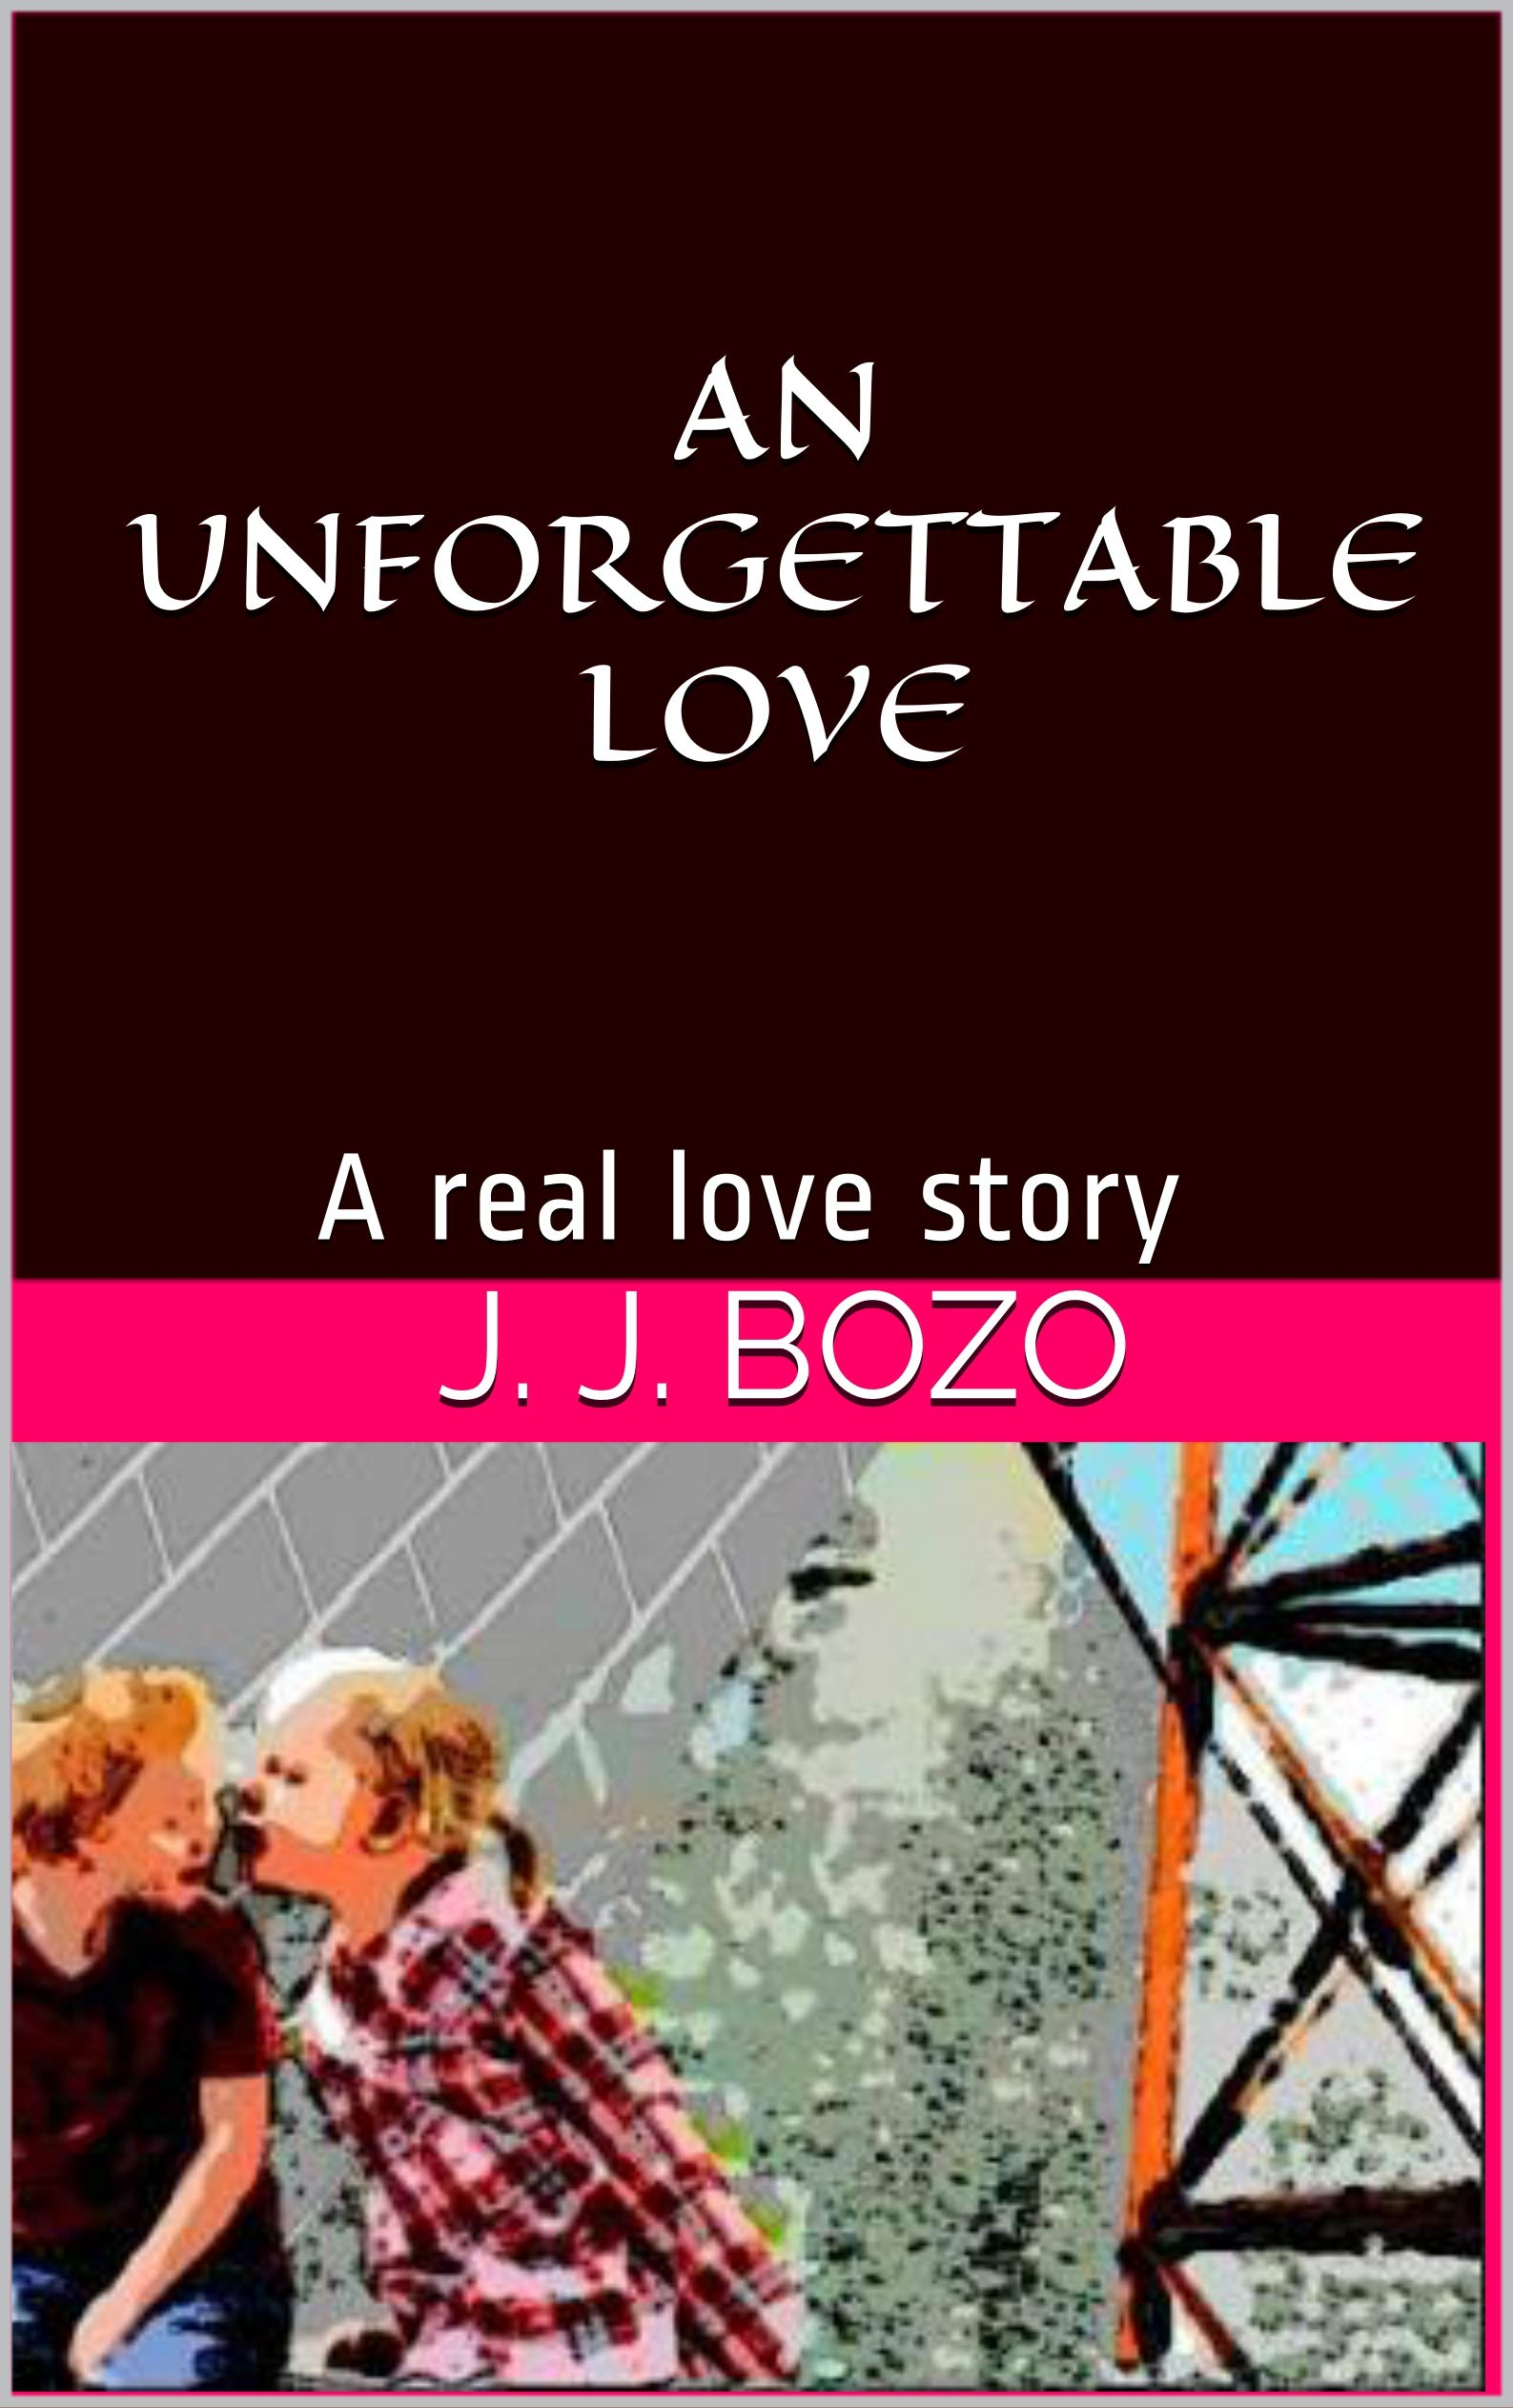 AN UNFORGETTABLE LOVE : A real love story